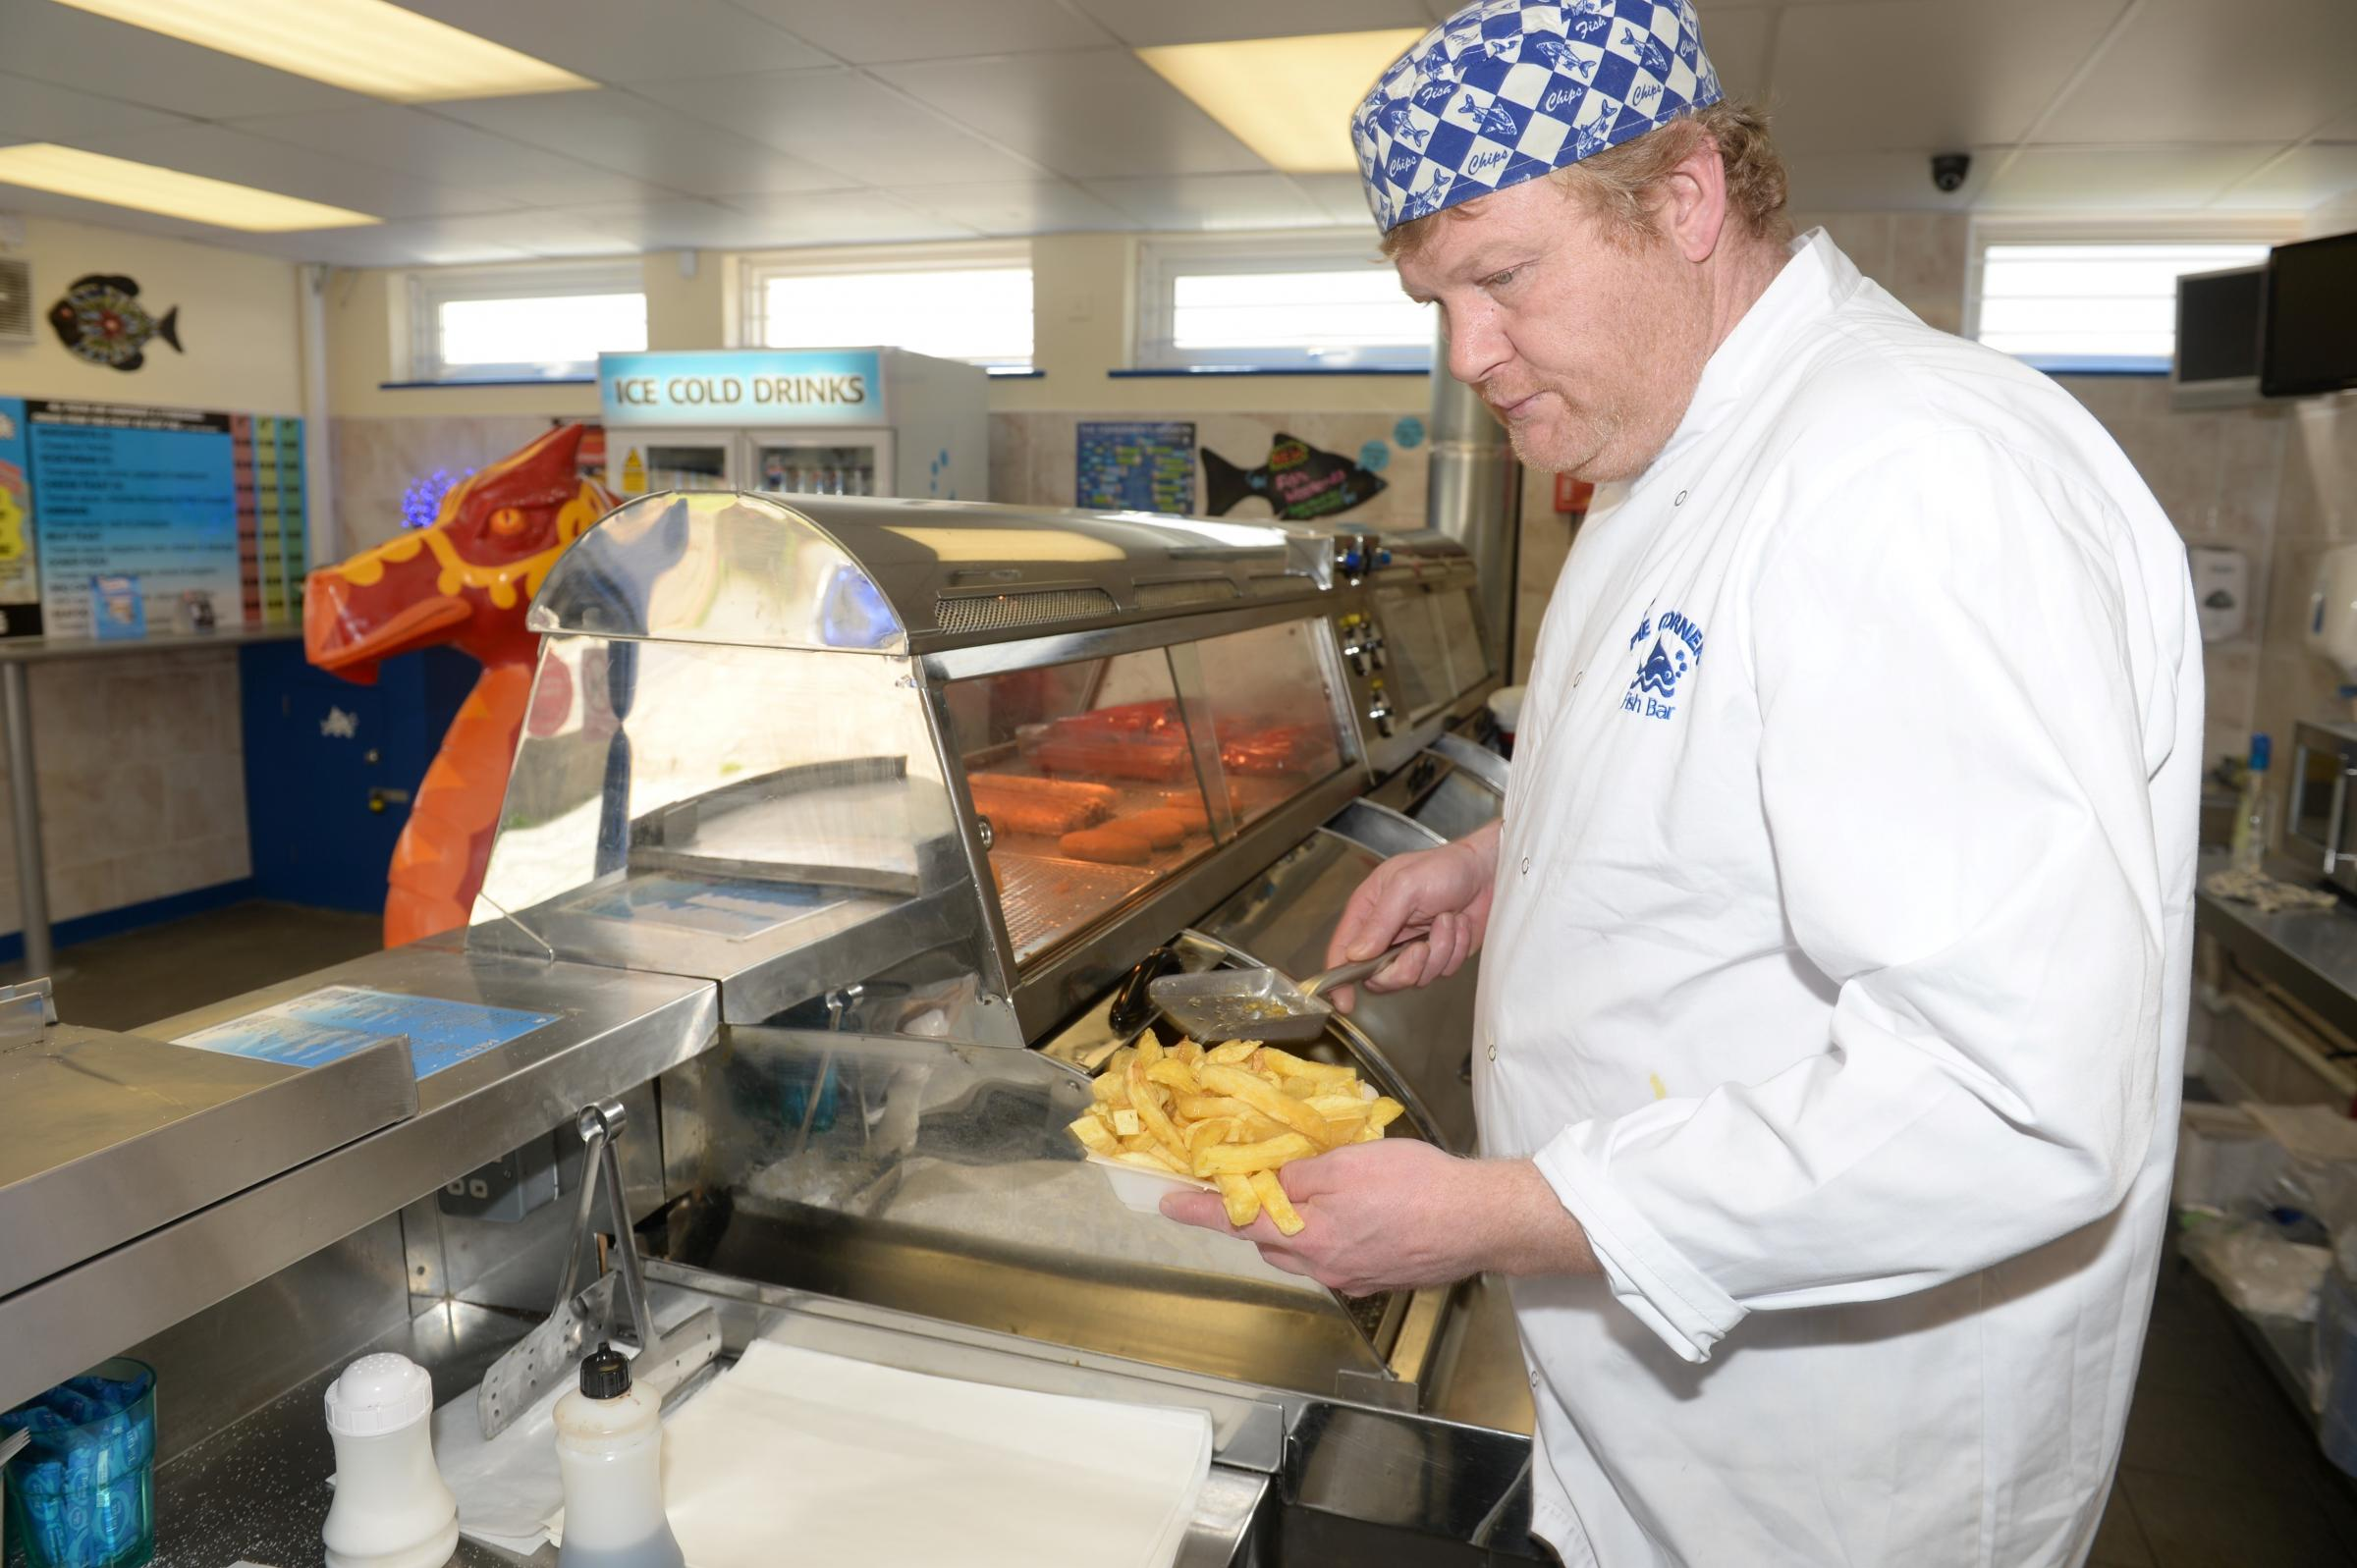 Newport chippy could be Britain's best